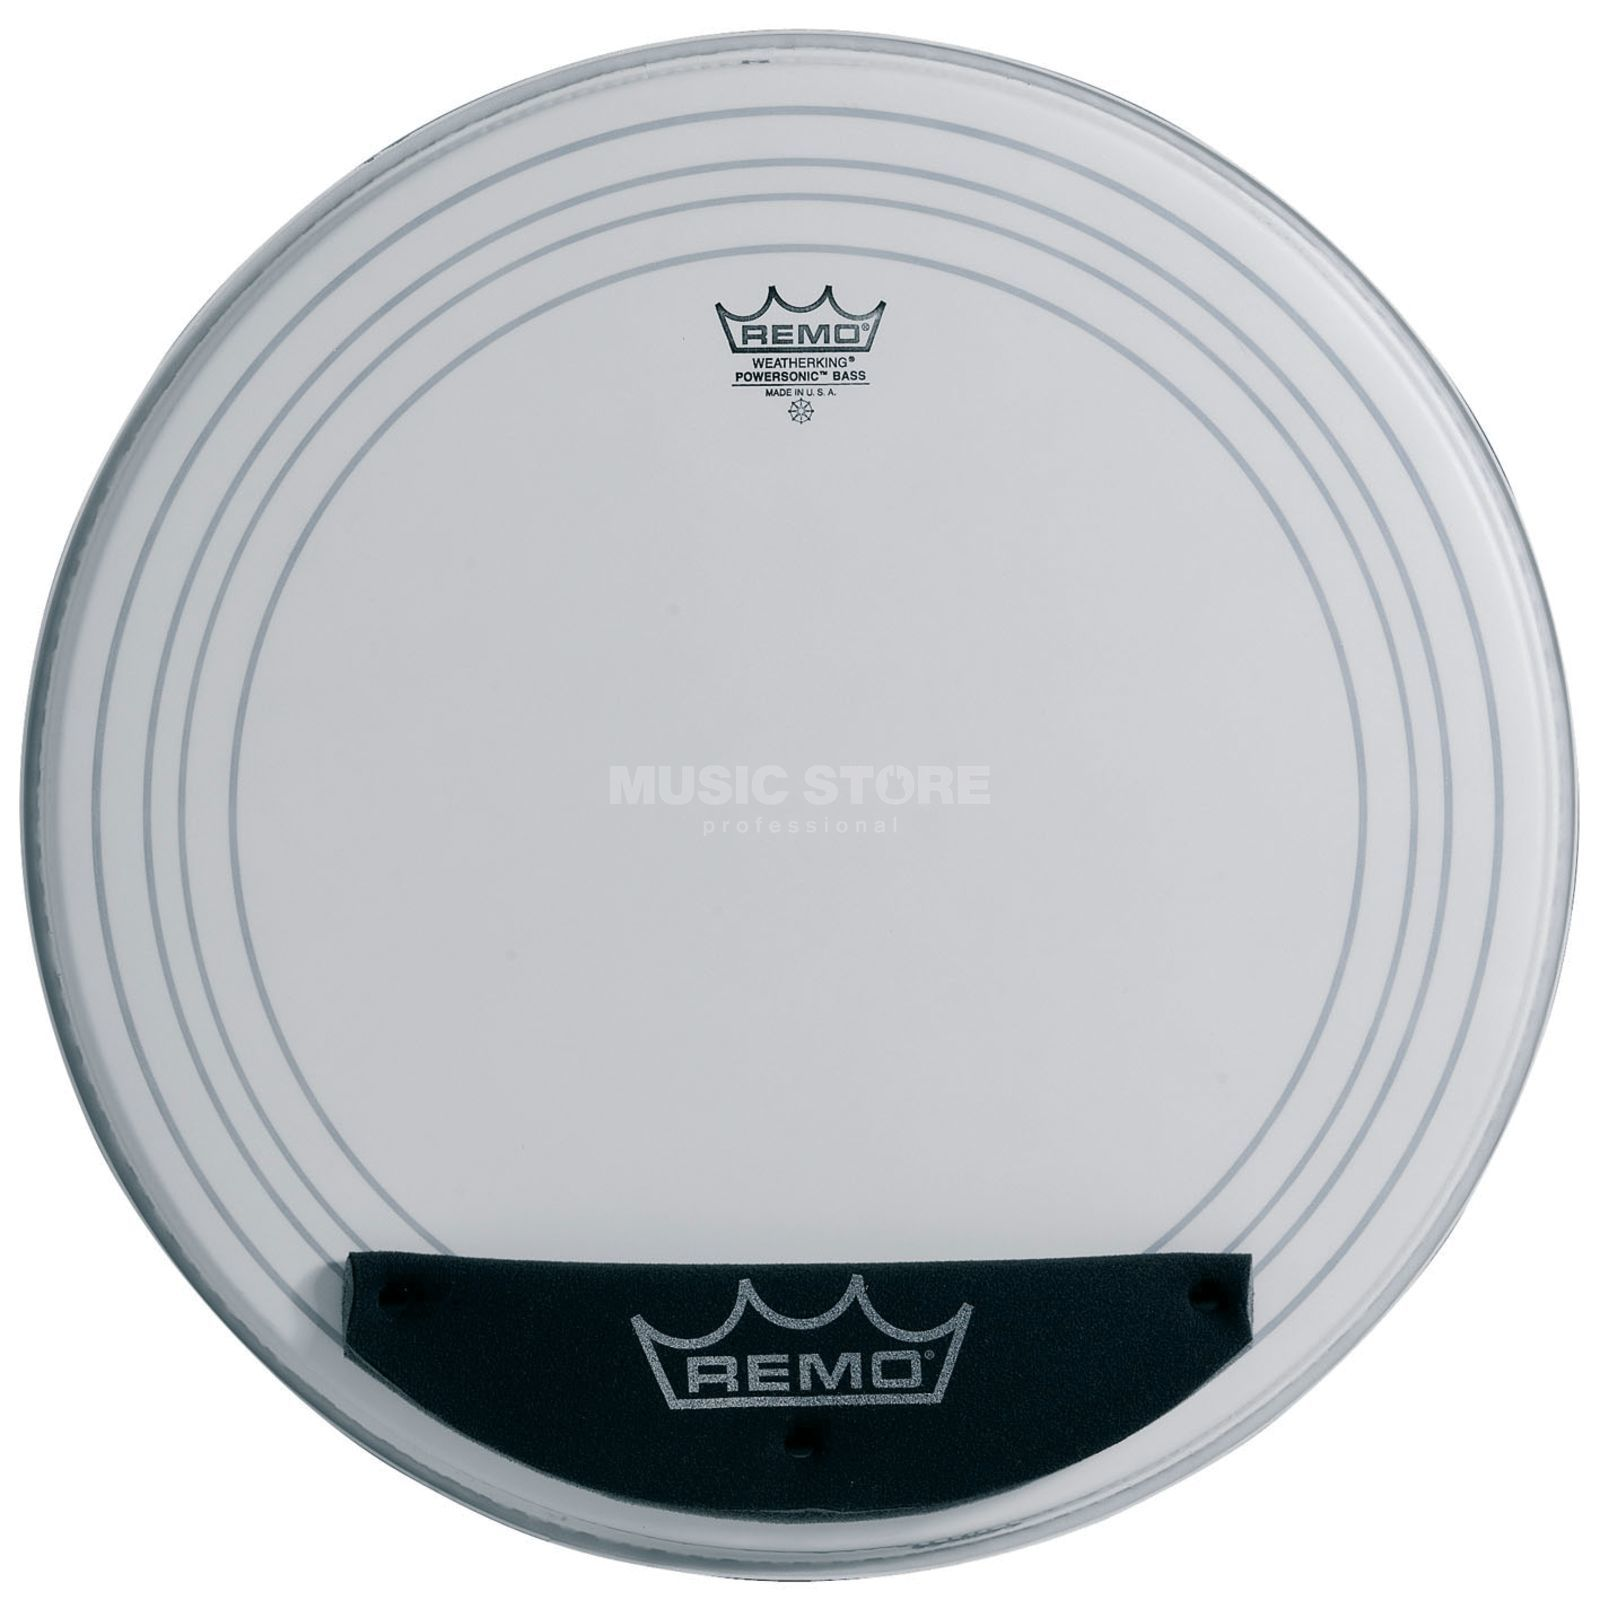 "Remo Powersonic 20"", coated, BassDrum Batter Head Immagine prodotto"